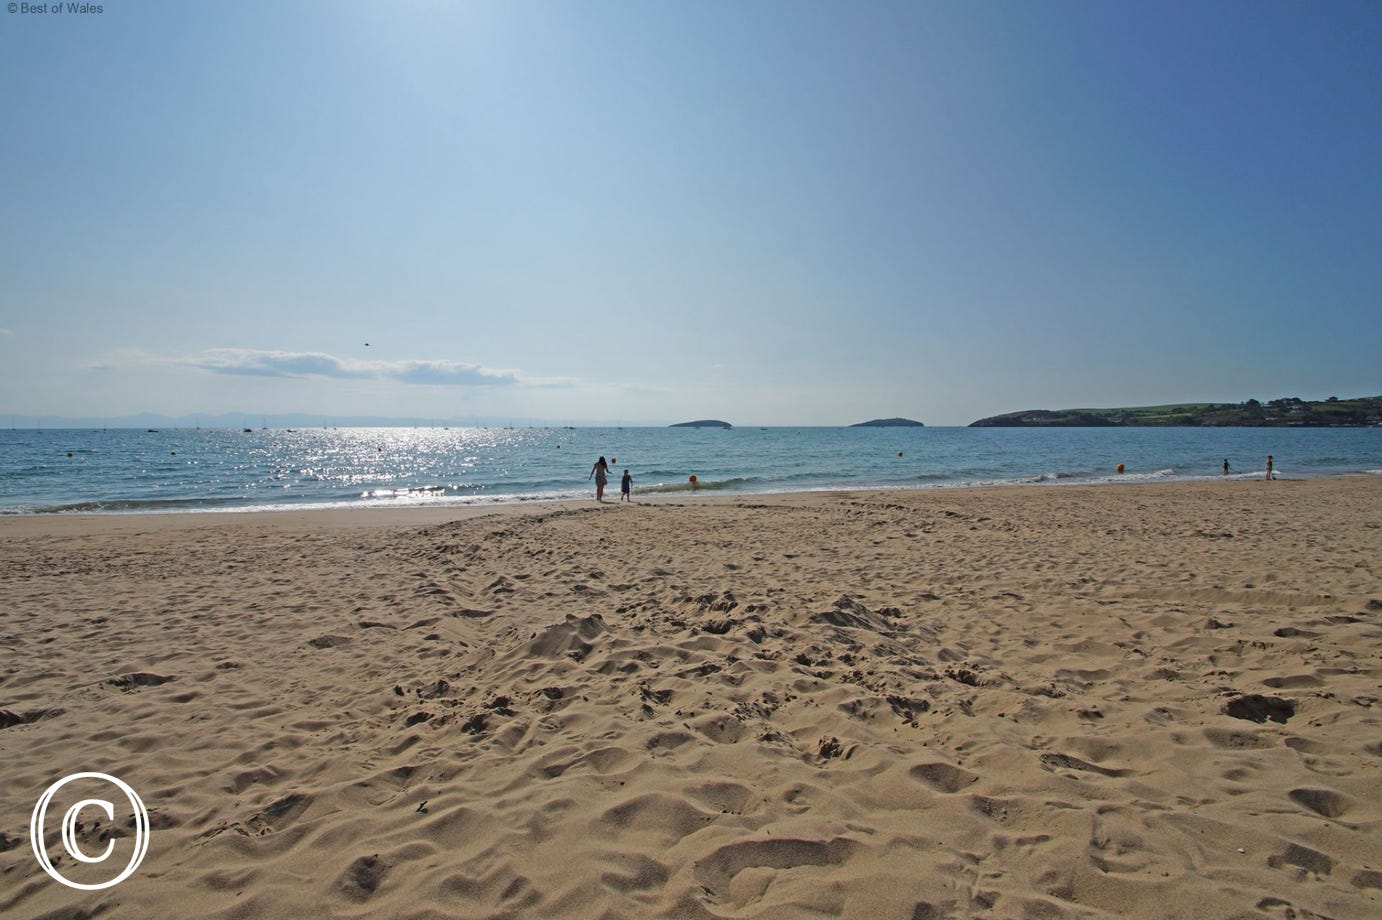 Abersoch beach (6.5 miles), one of many beaches within a short drive